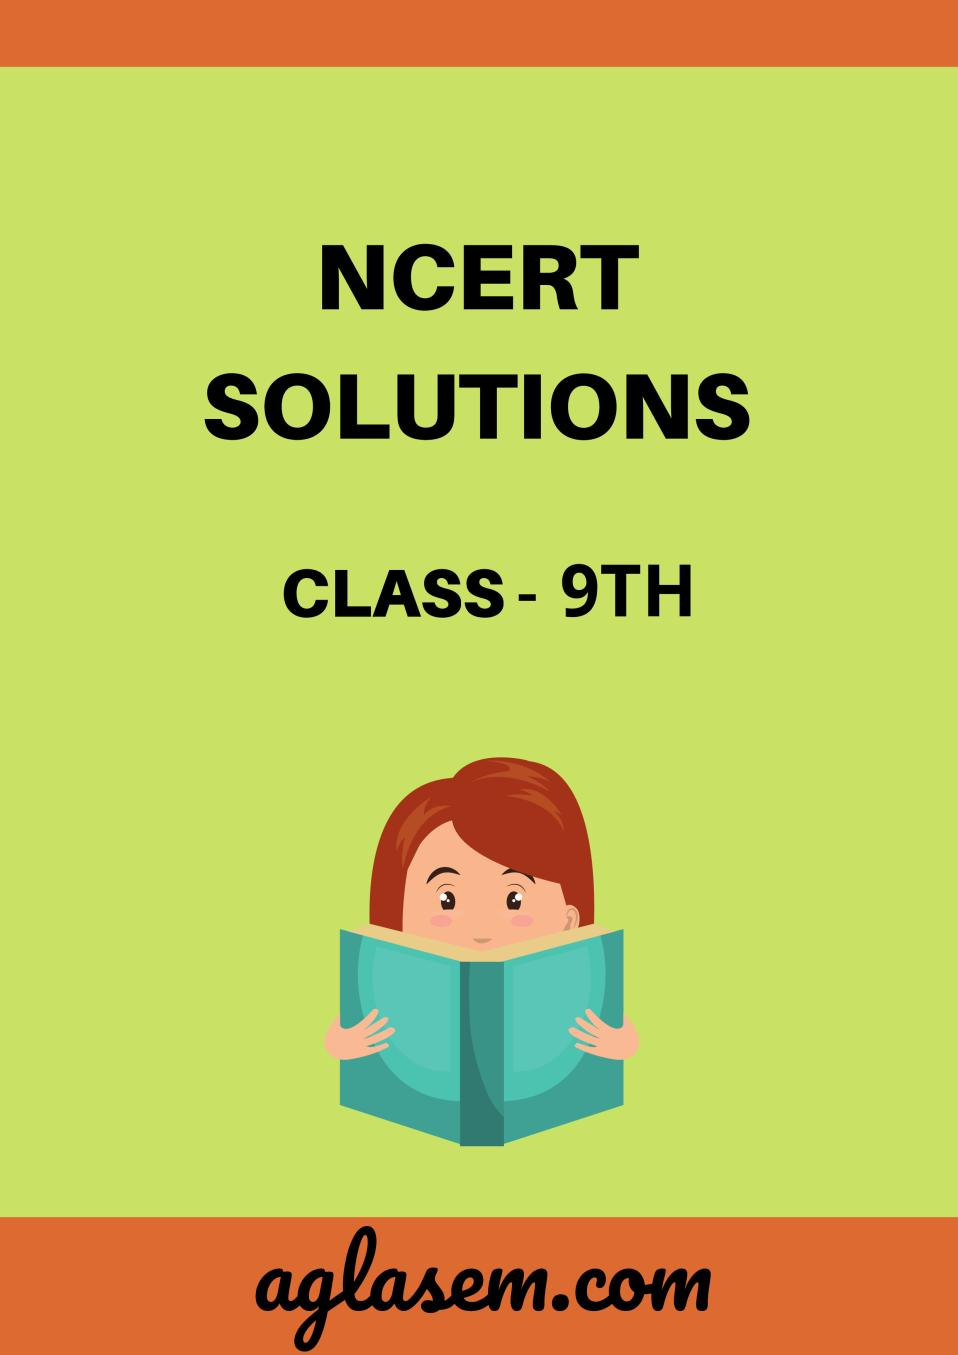 NCERT Solutions for Class 9 English (Beehive) Chapter 2 The Sound of Music